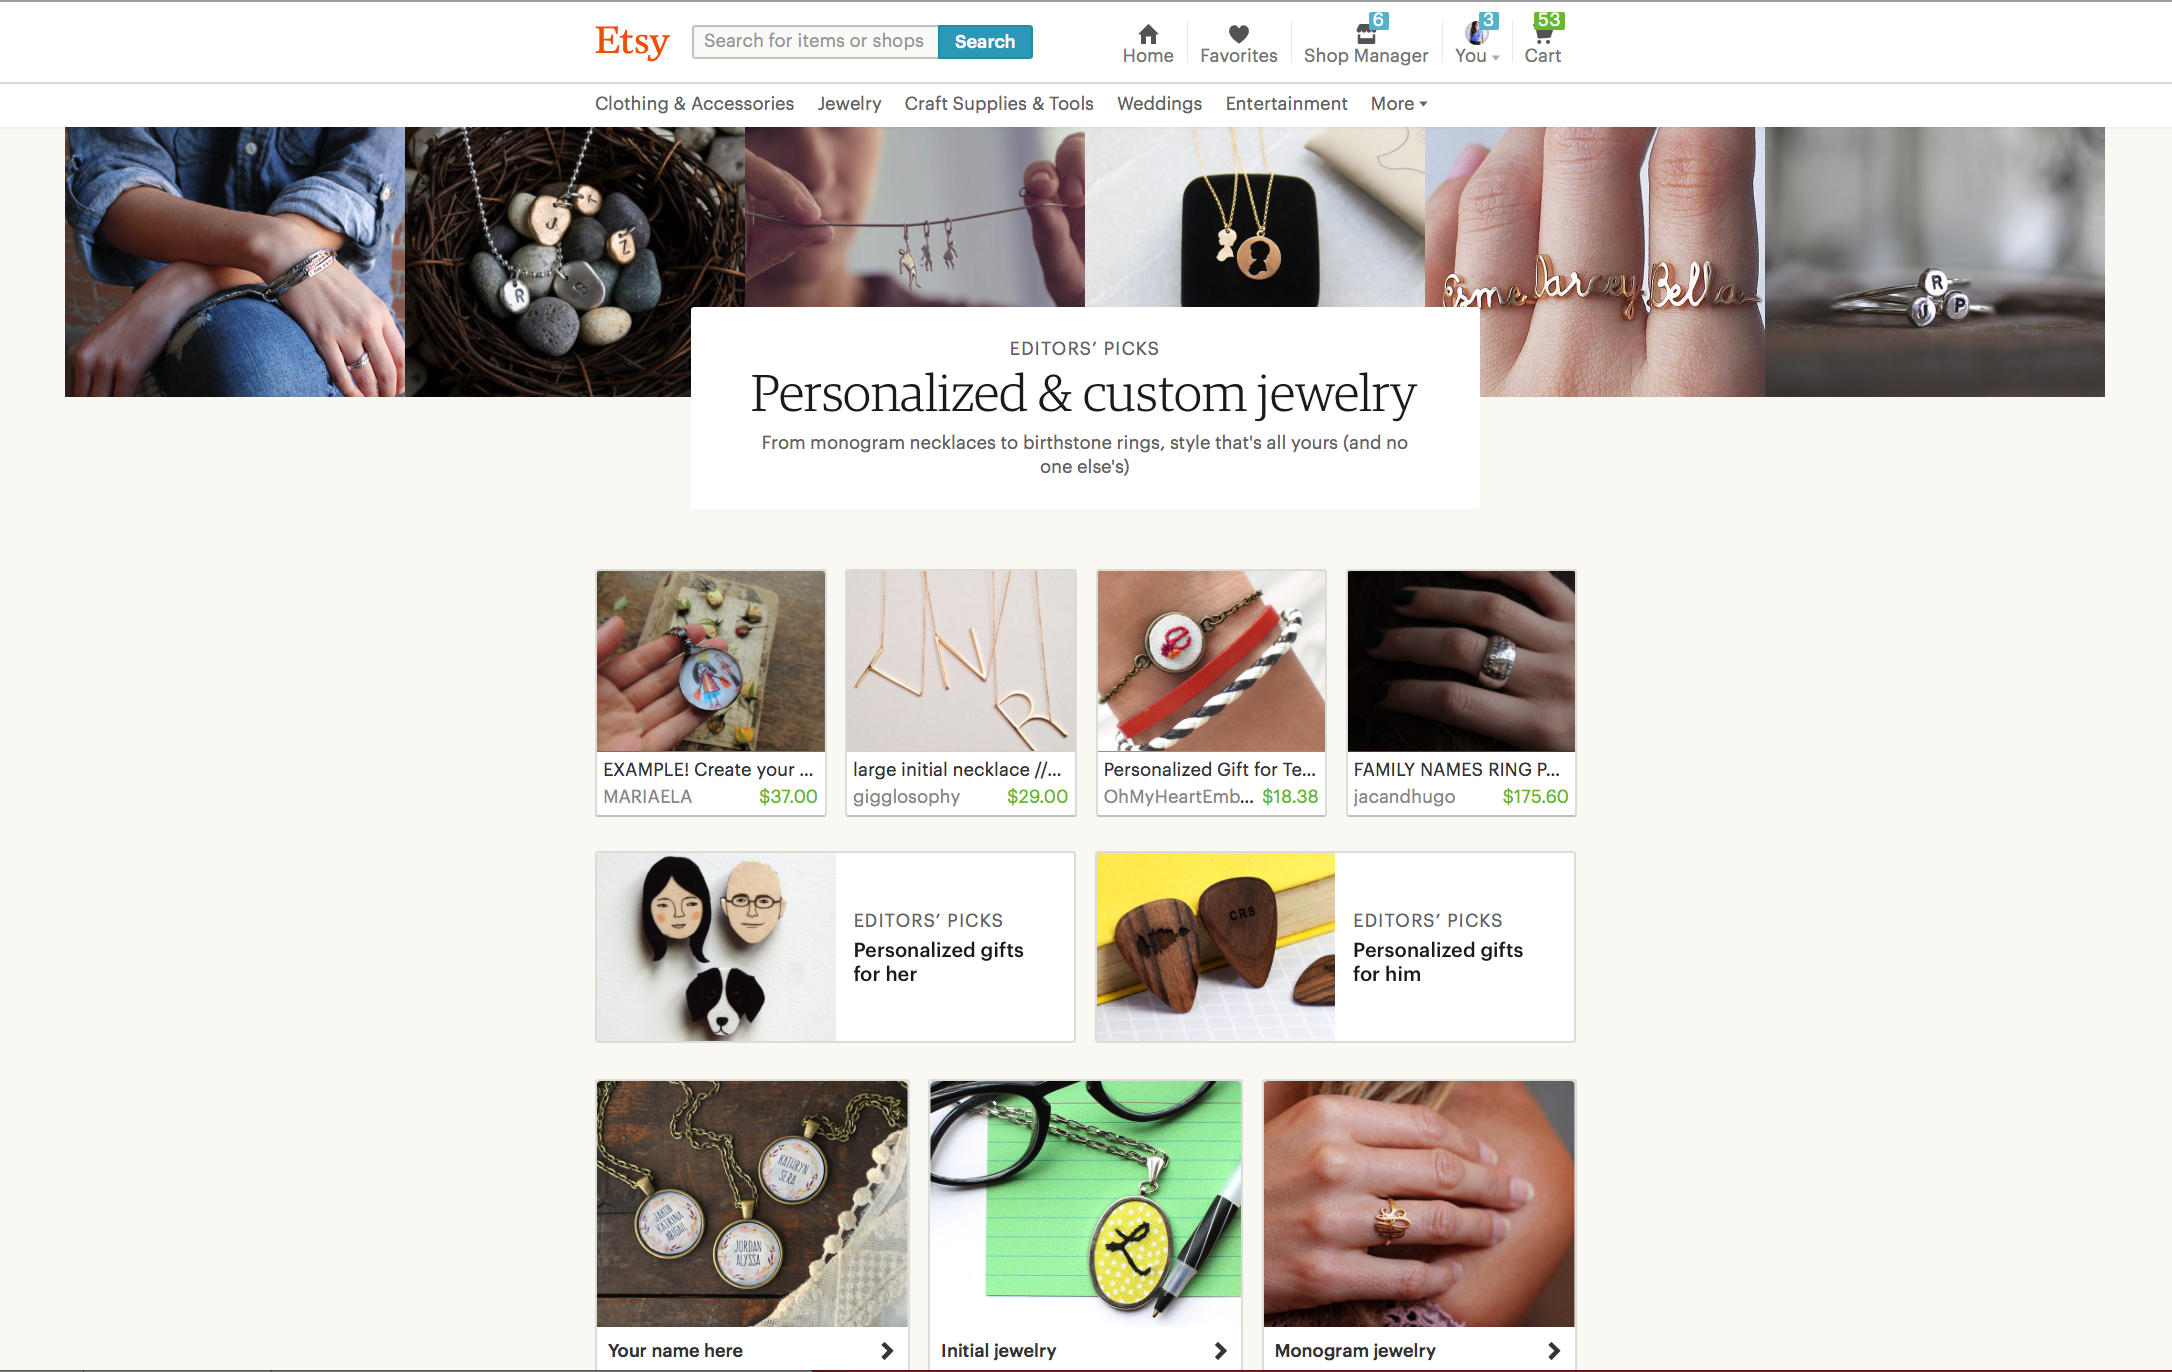 Learn how I got featured on Etsy using this proven strategy and awareness guide. | the merriweather council blog